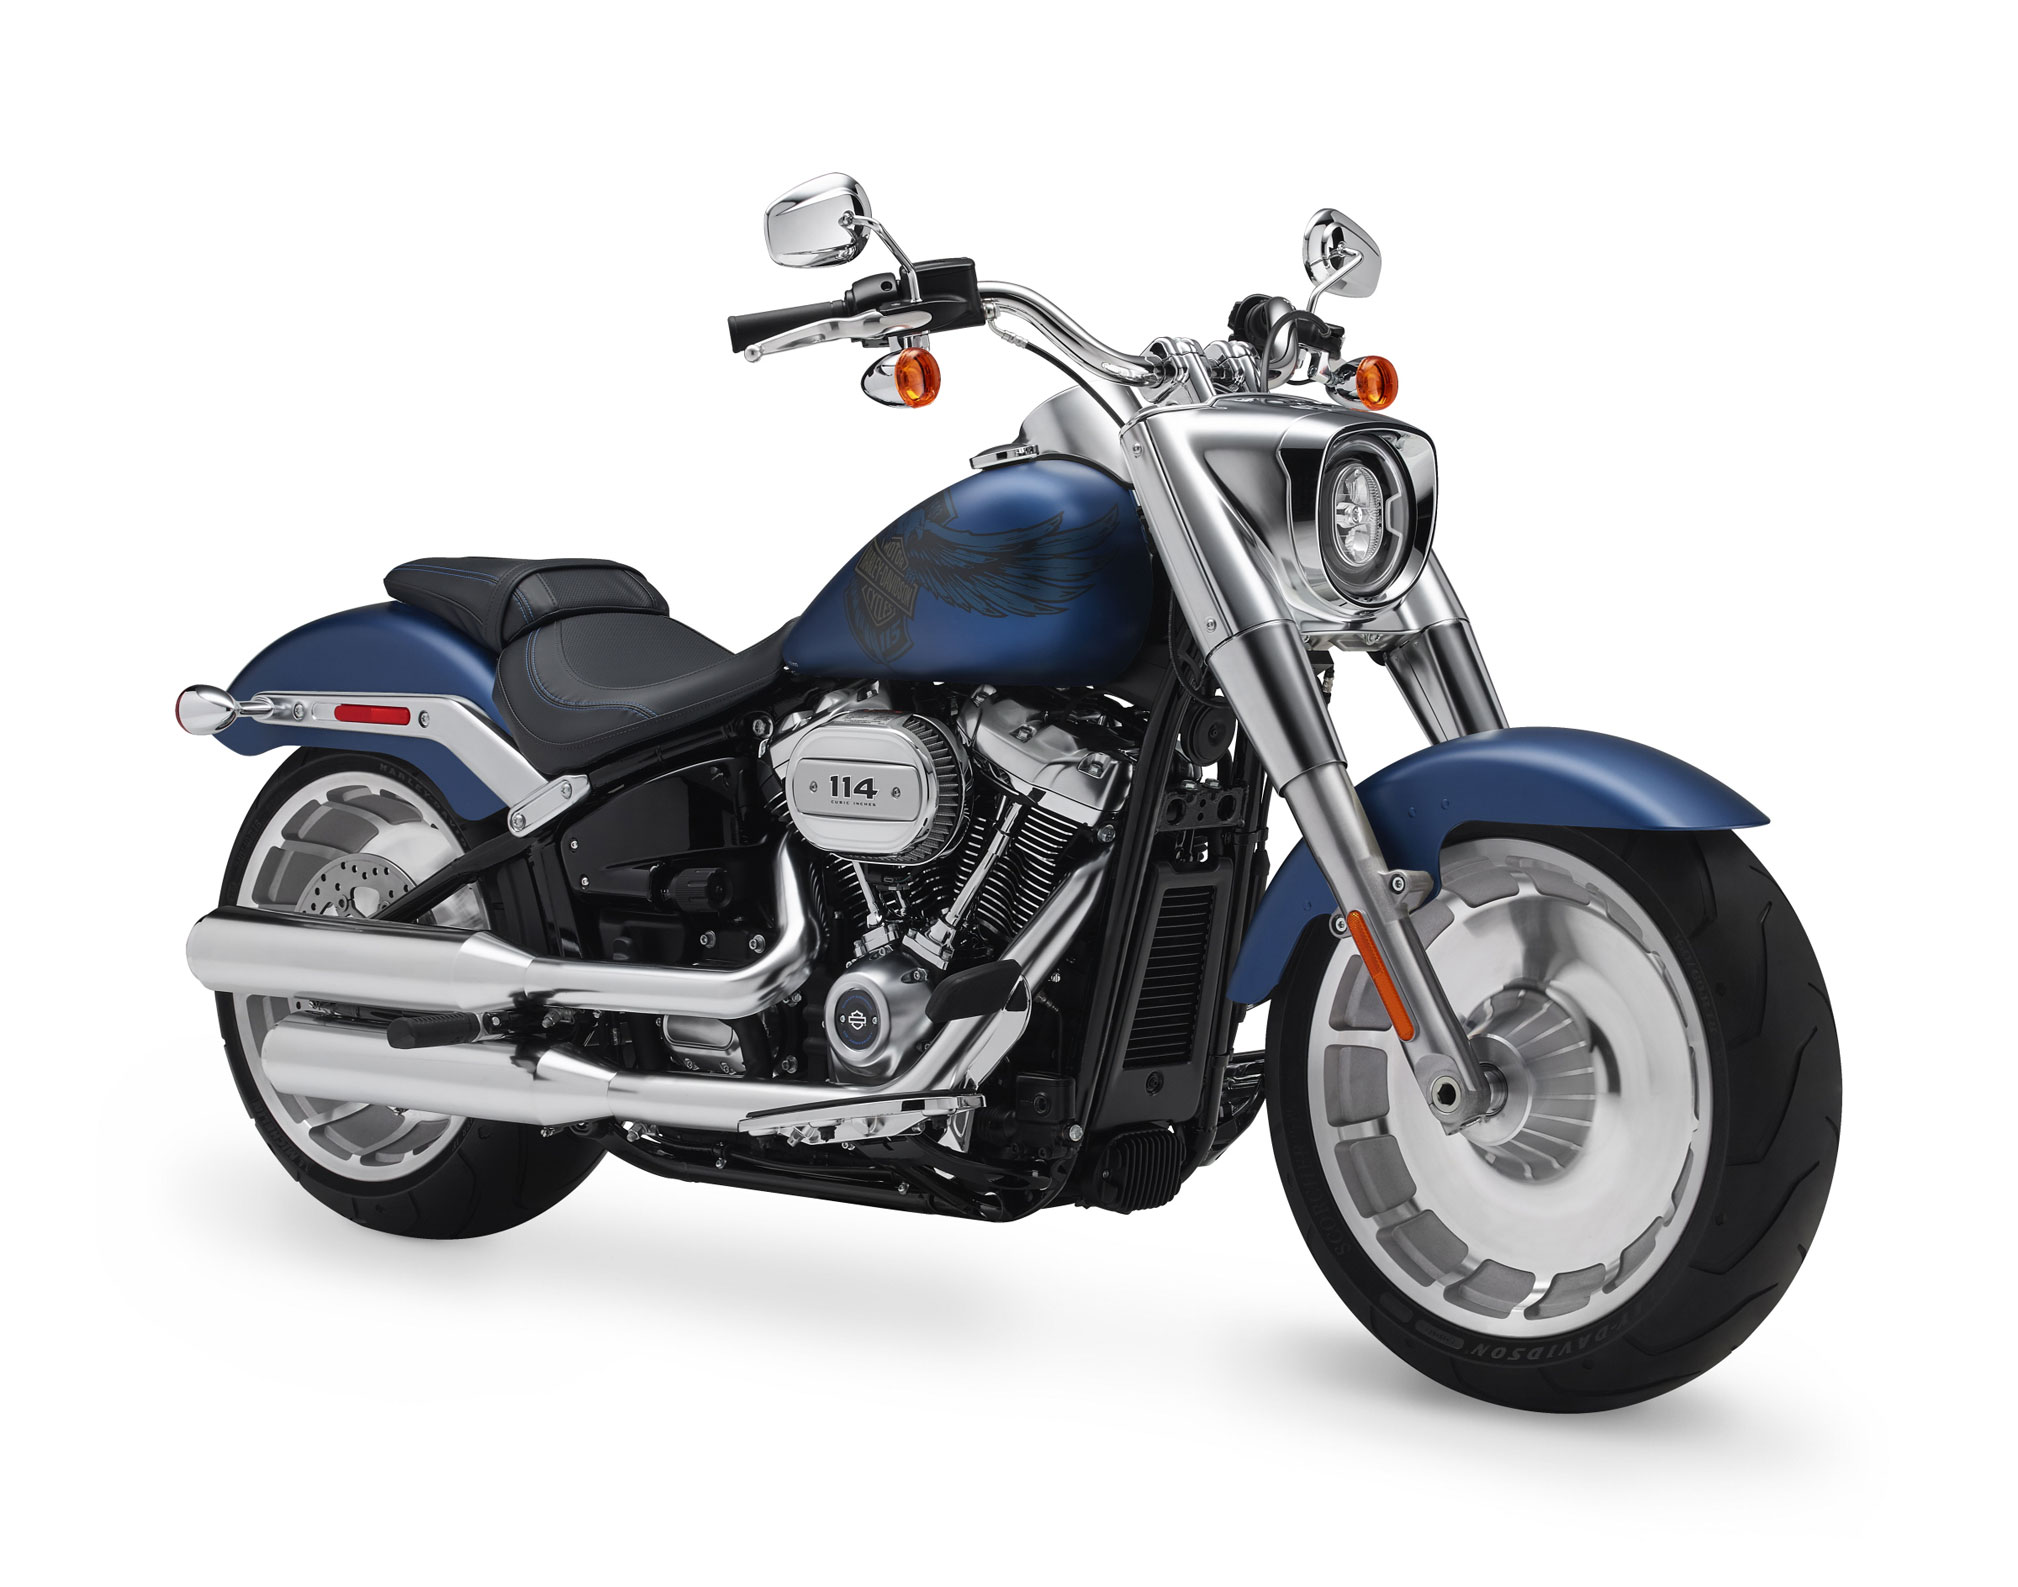 2018 Harley Davidson Fat Boy 115th Anniversary Anx Review Totalmotorcycle